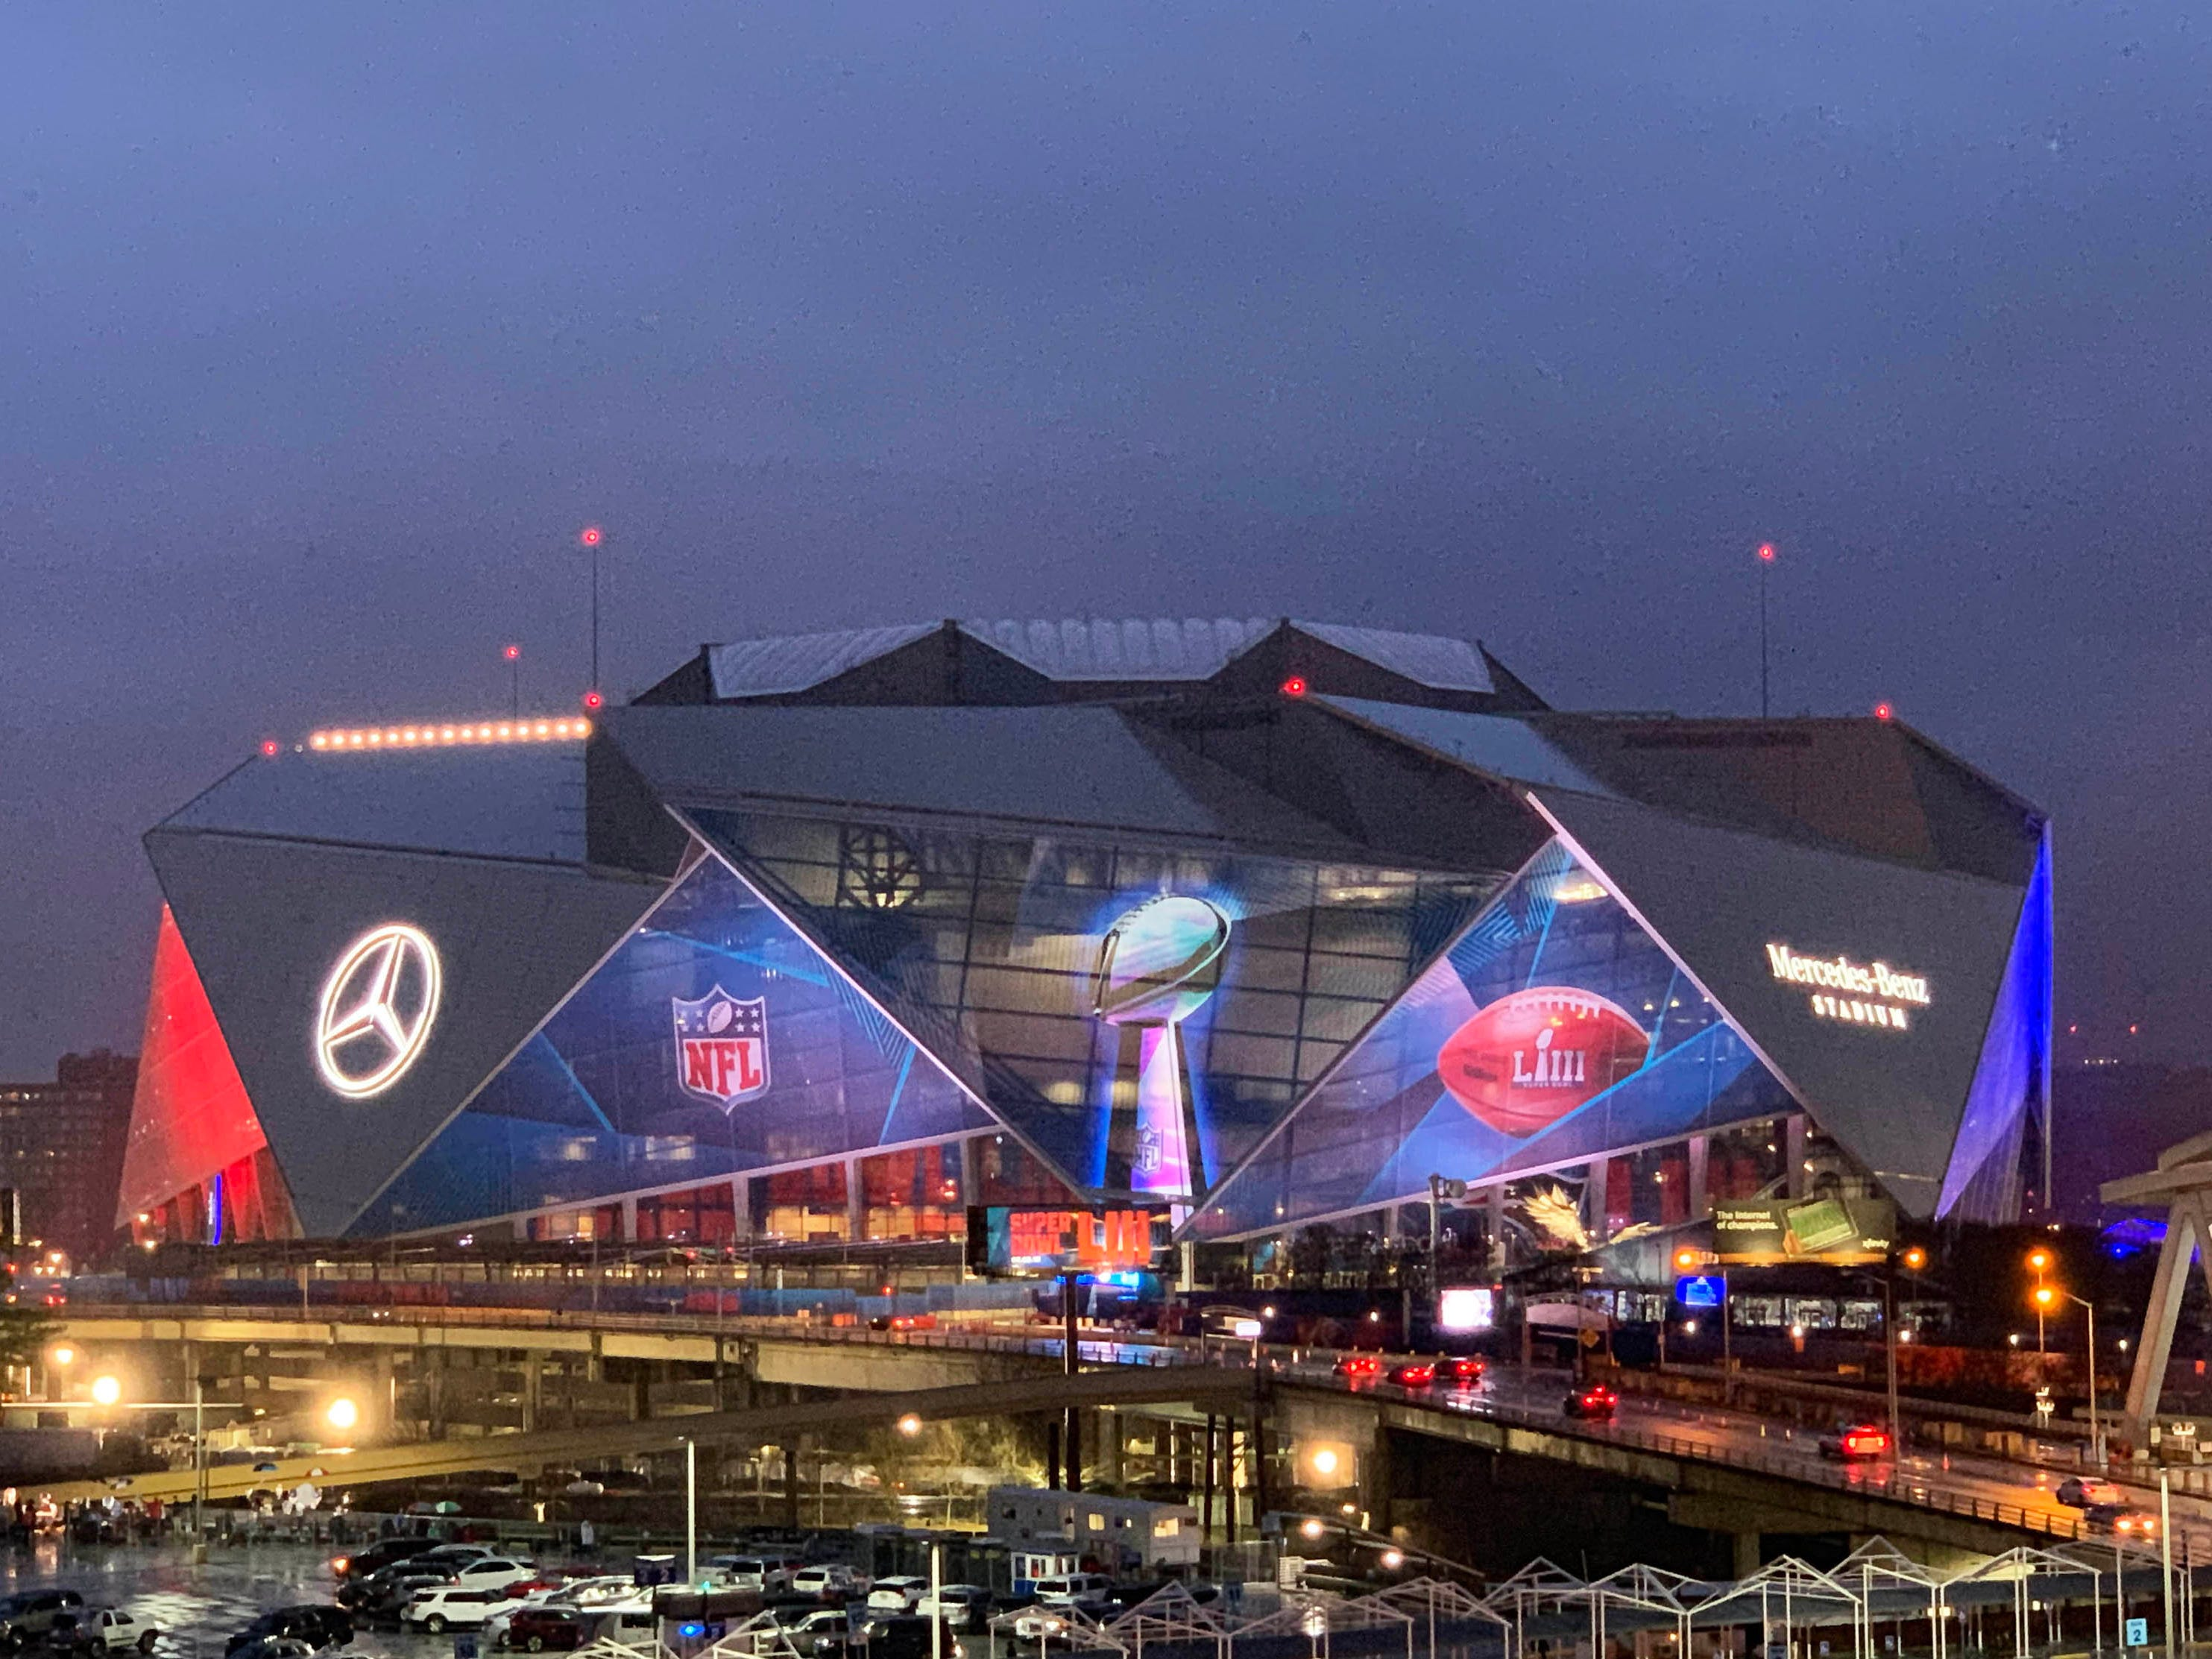 Mercedes-Benz Stadium before Super Bowl LIII between the Patriots and Rams.